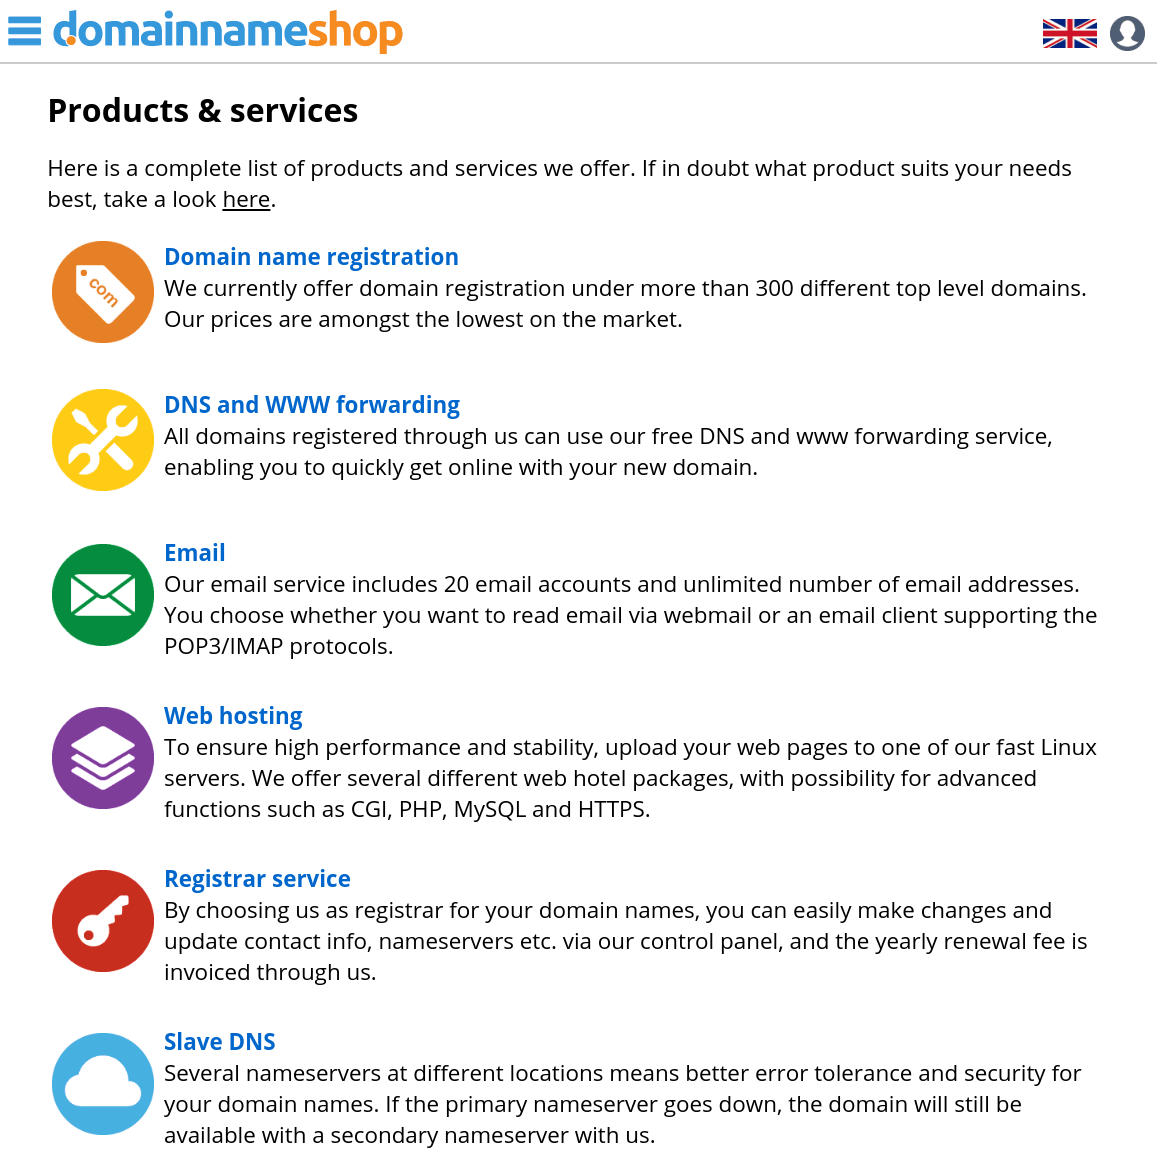 DomainNameShop-overview1